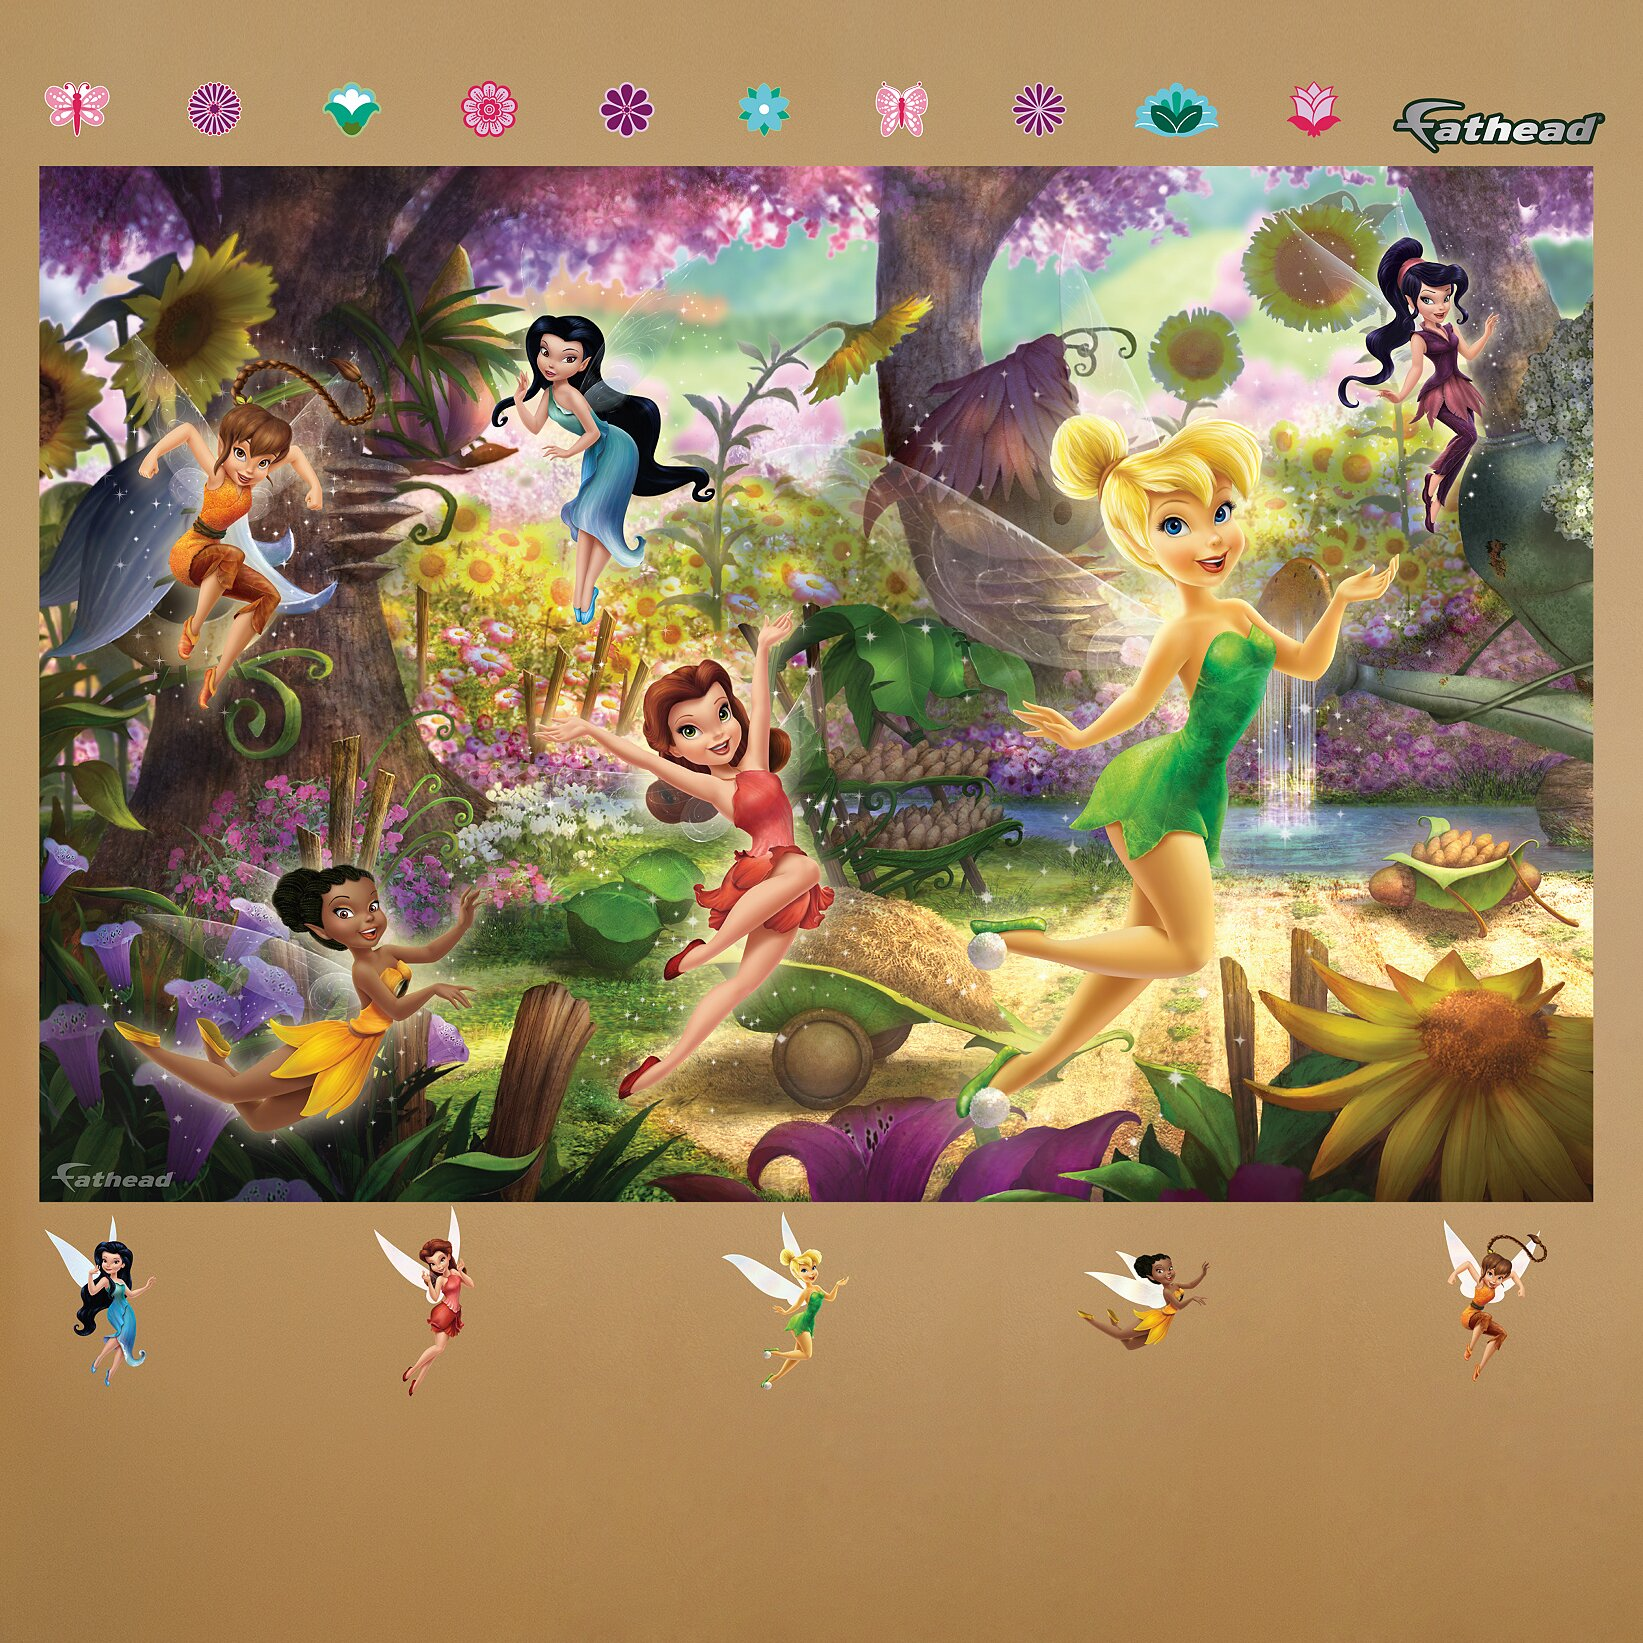 Fathead disney fairies wall mural wayfair for Disney fairies wall mural